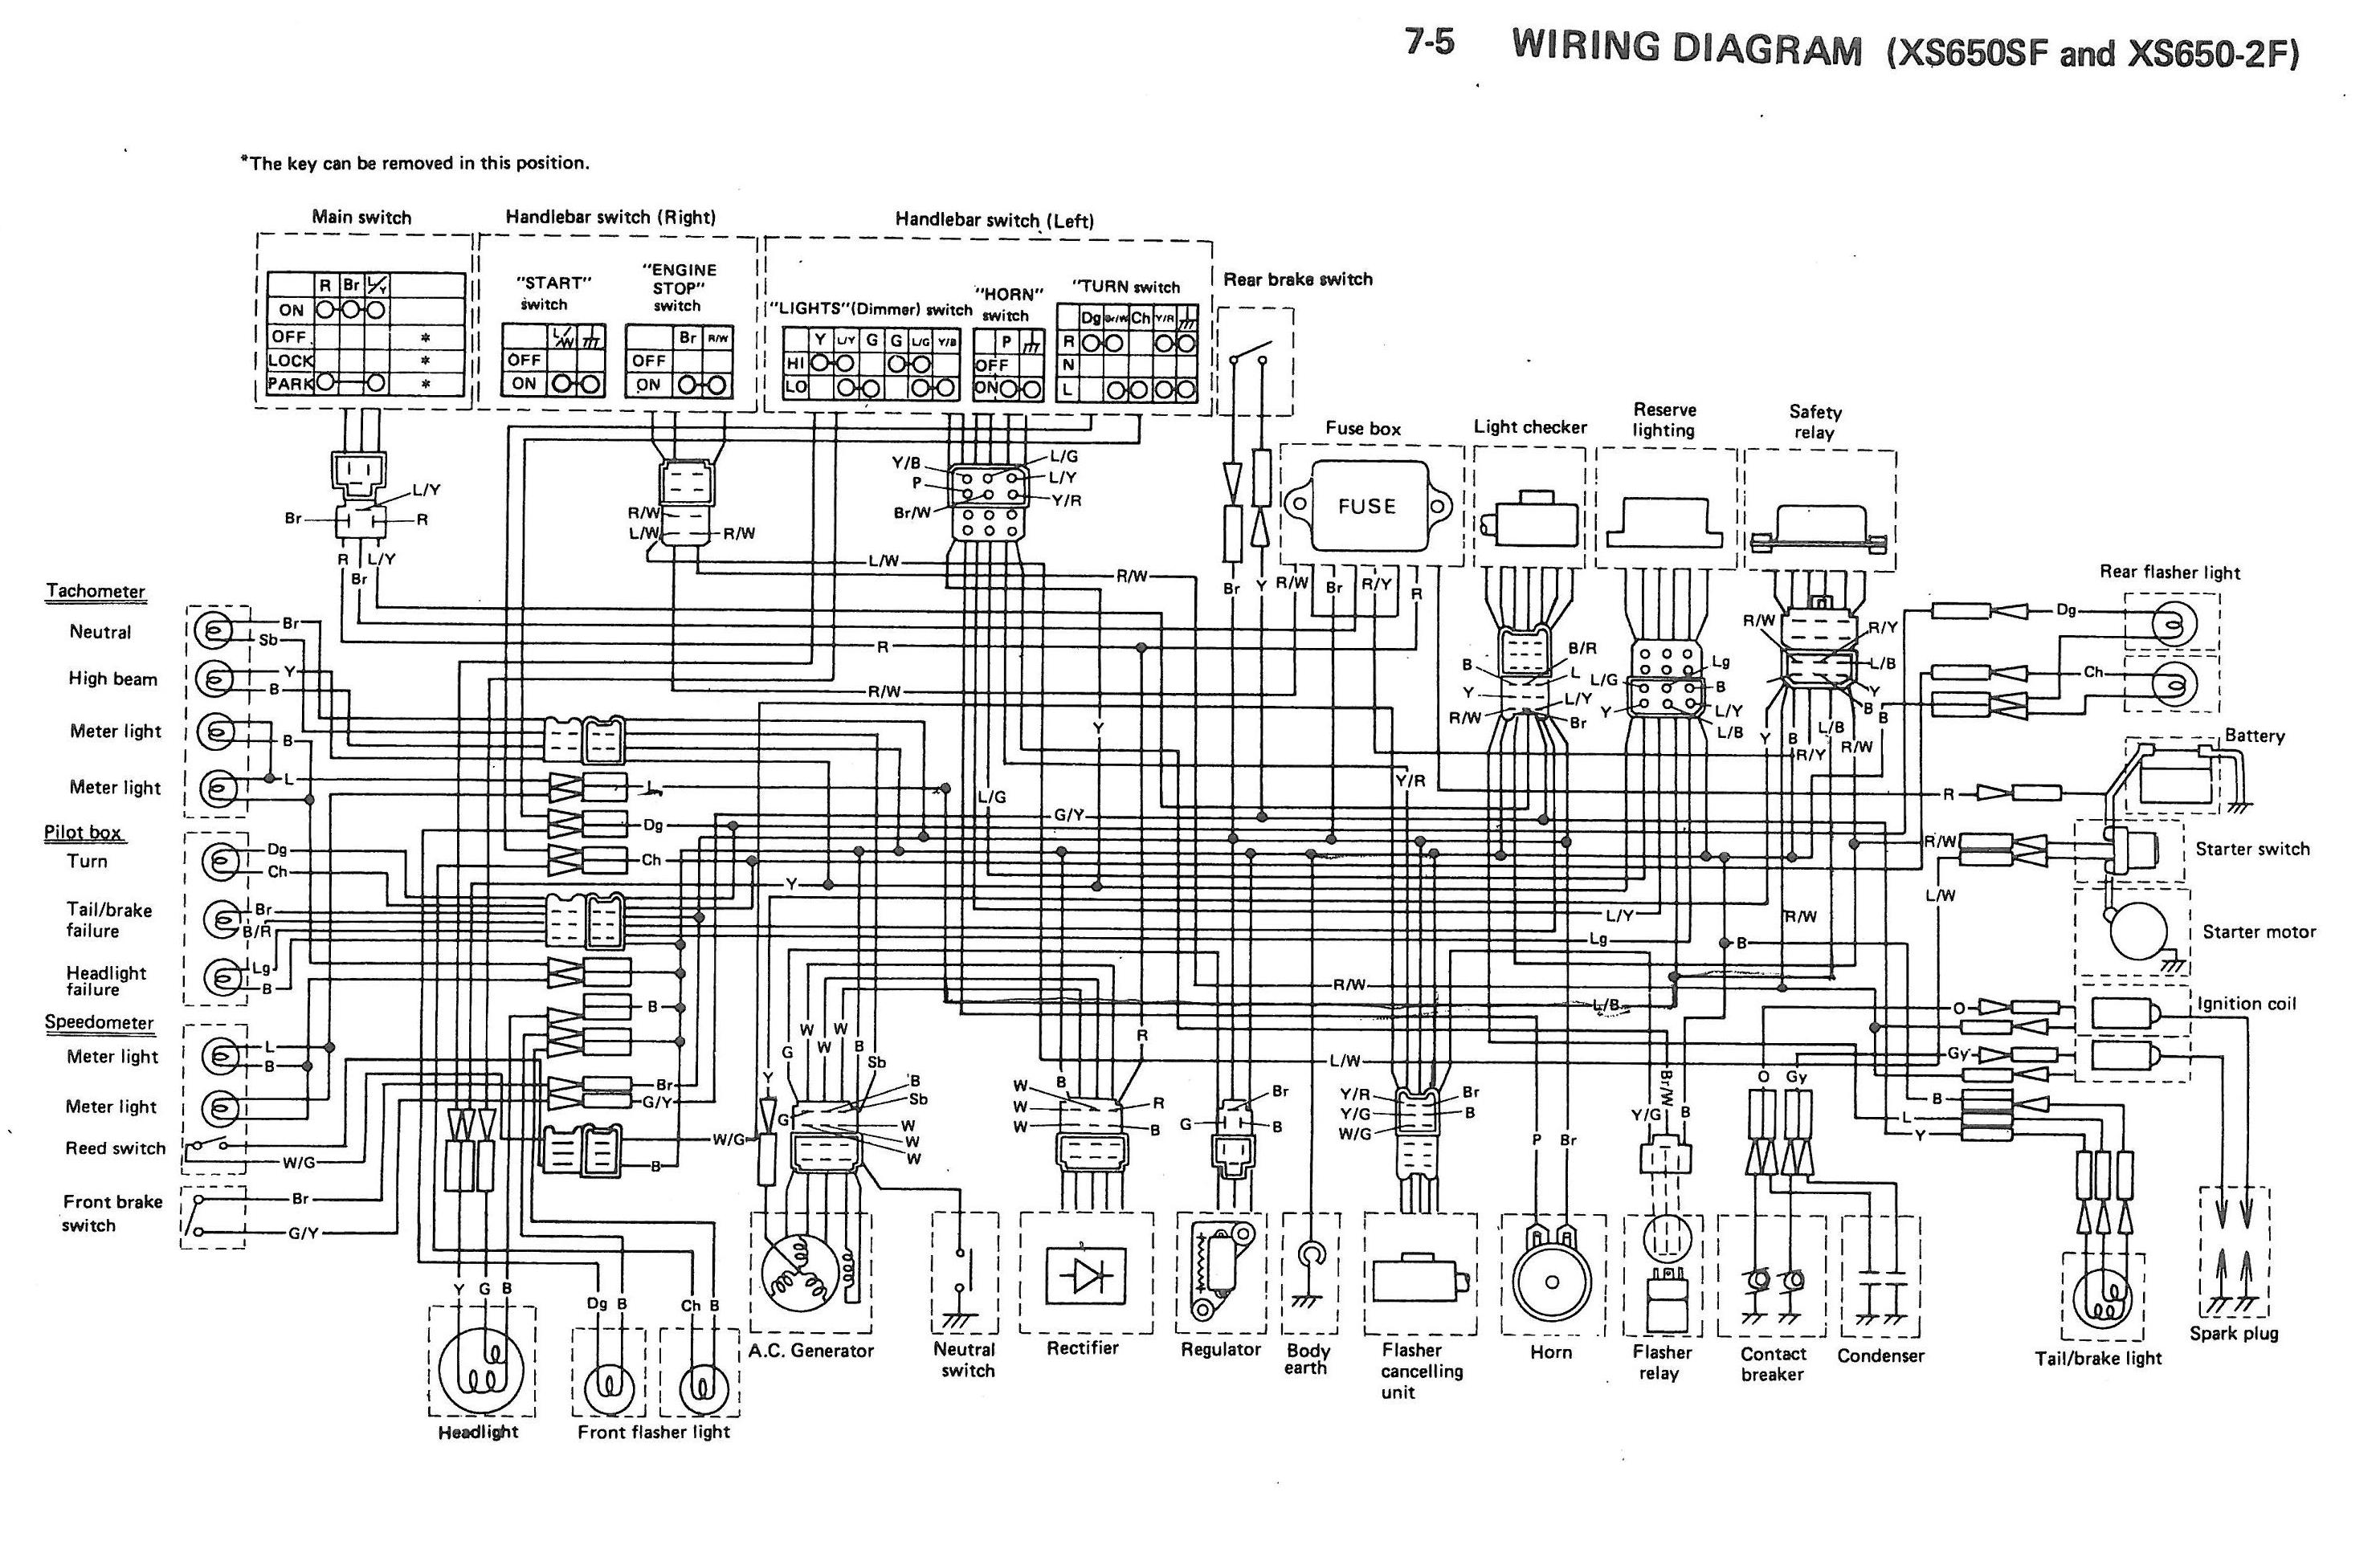 79 xs650sf 2f xs650 79 xs650sf 2f wiring diagrams thexscafe wiring diagram at panicattacktreatment.co